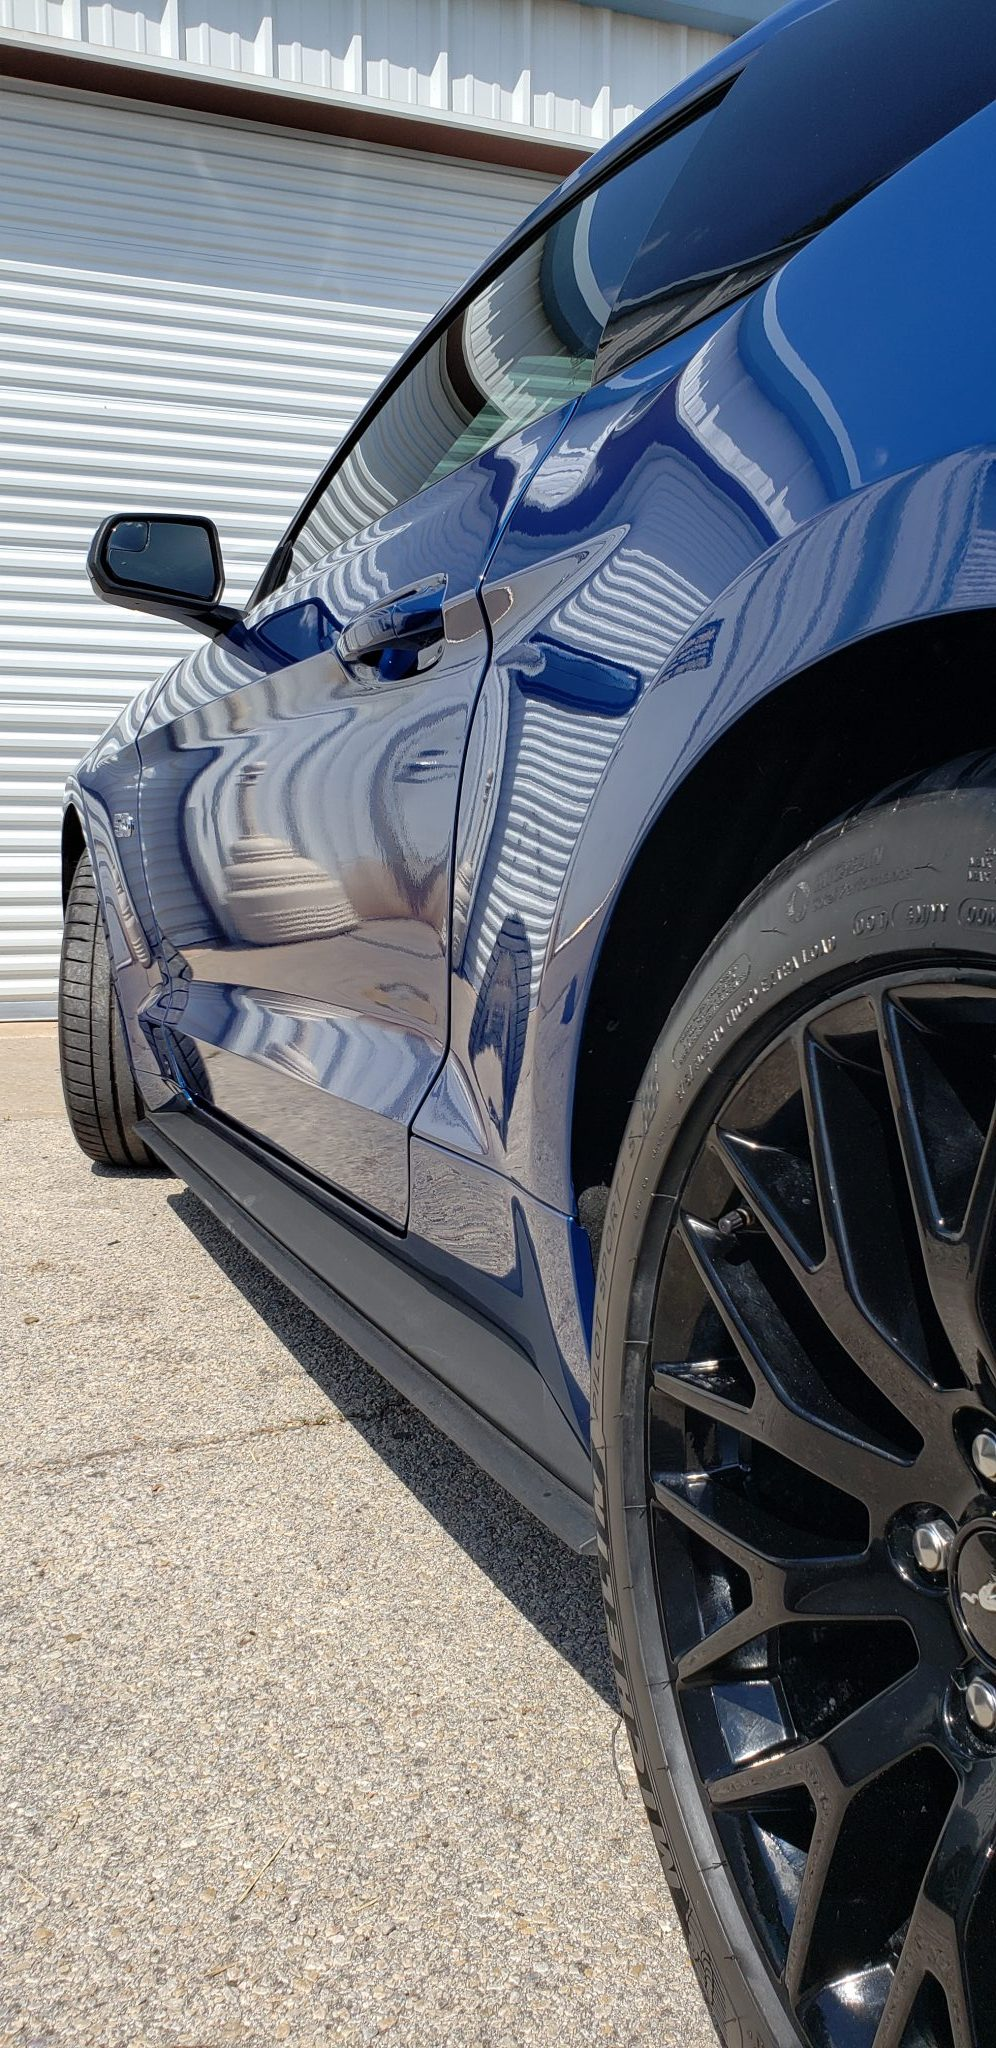 Ford Mustang with Wax Sealant